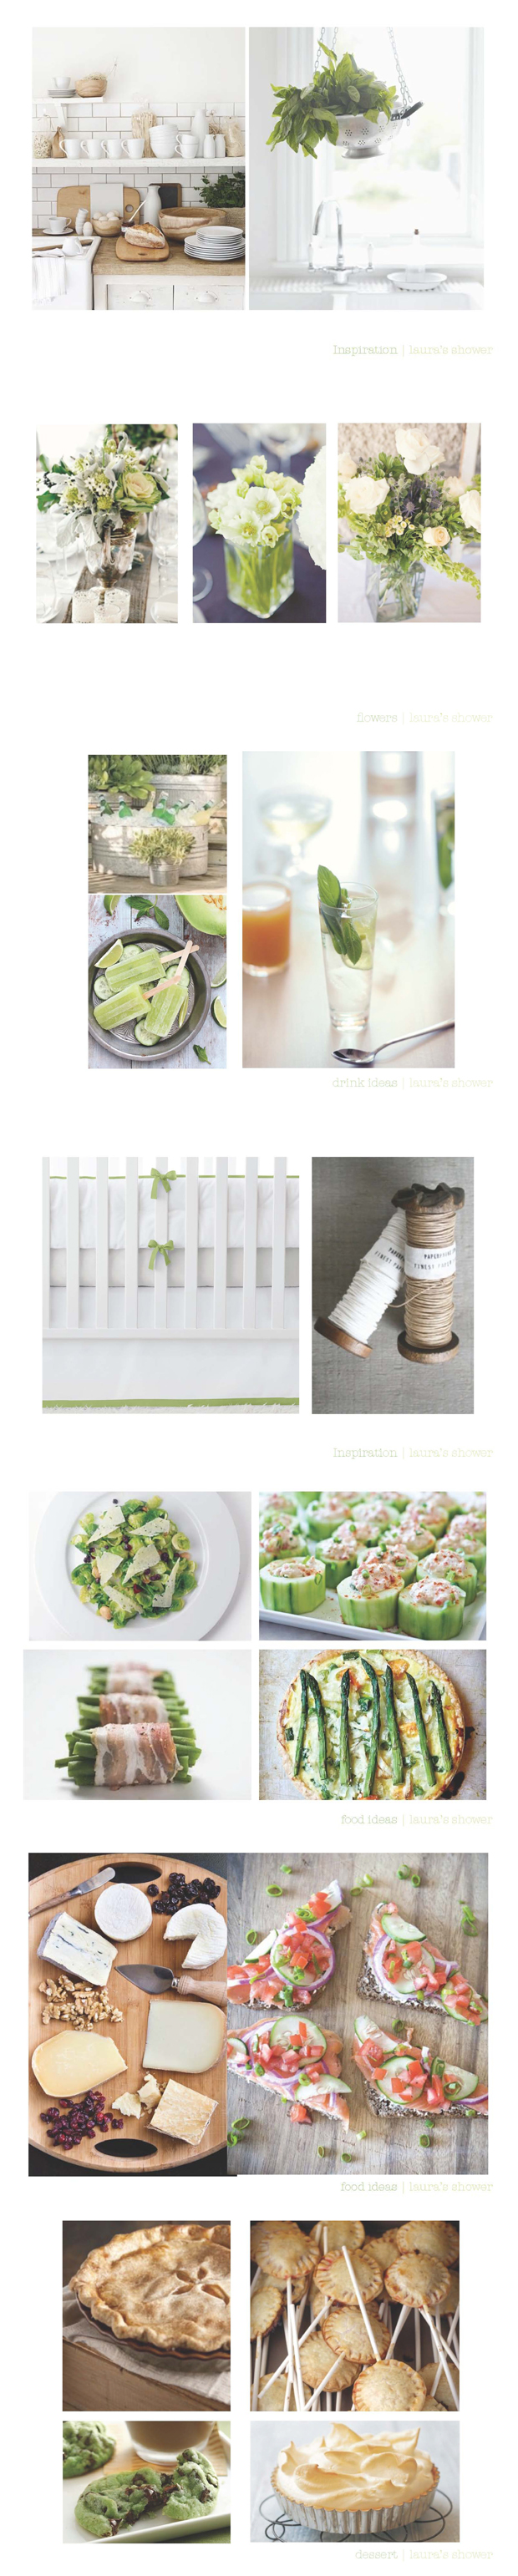 sprout inspiration board2c